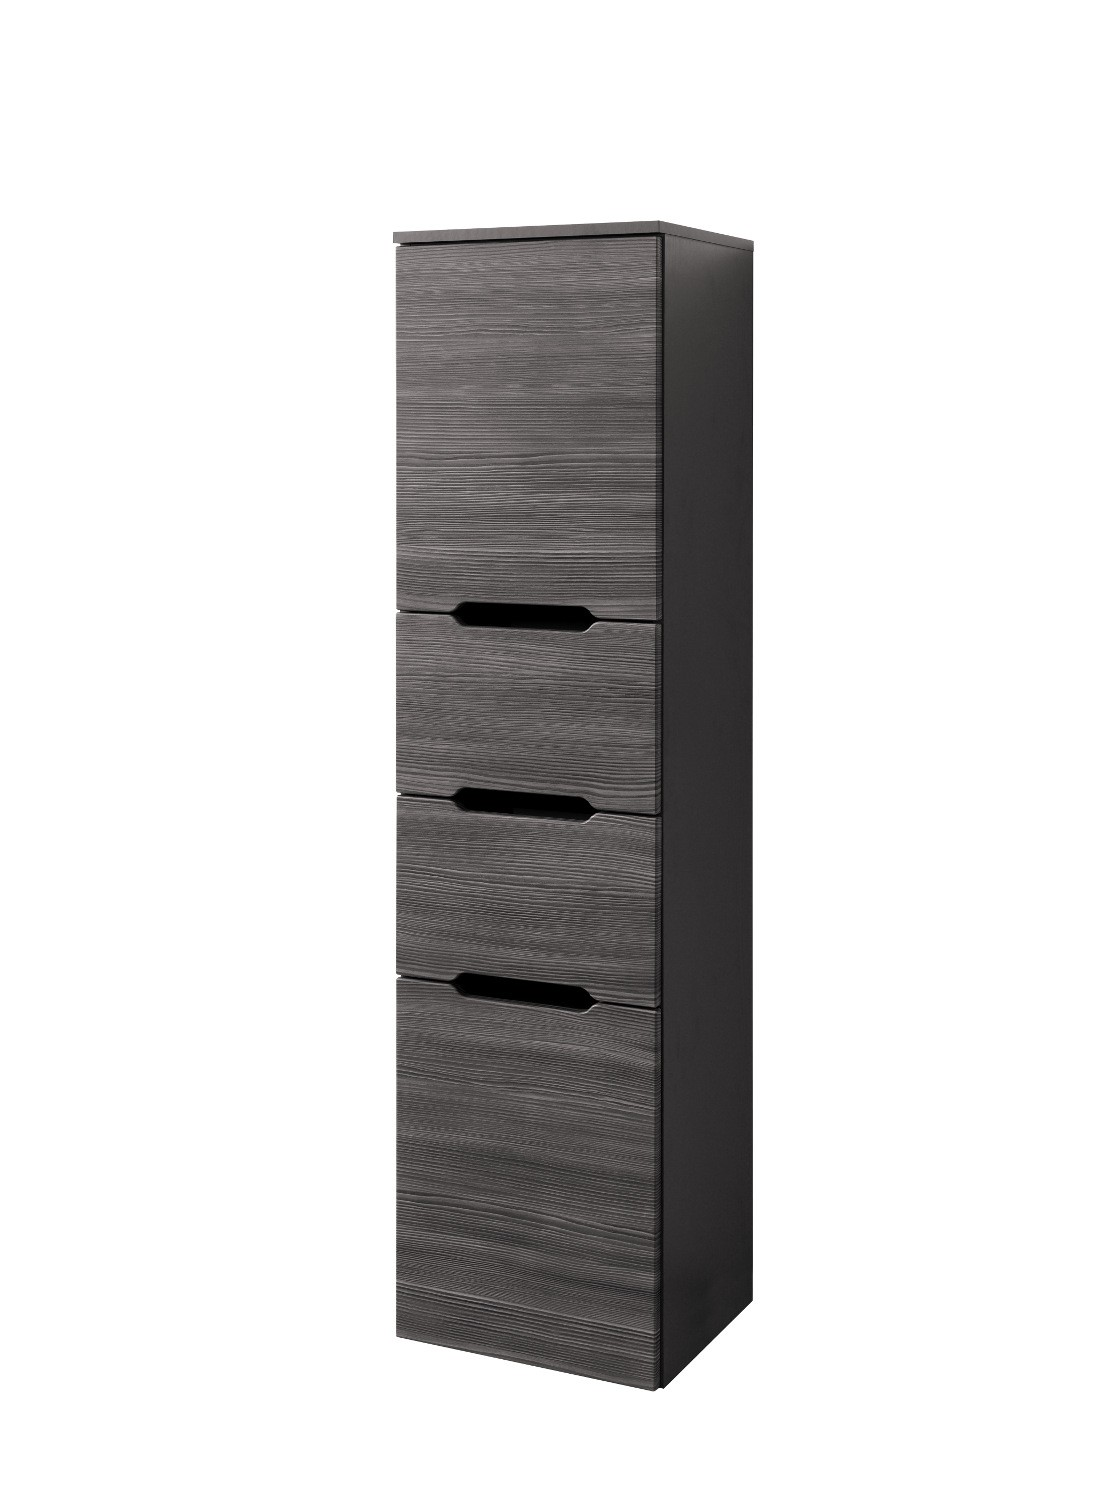 bad hochschrank belluno 2 t rig 2 ausz ge 40 cm breit l rche anthrazit bad bad hochschr nke. Black Bedroom Furniture Sets. Home Design Ideas